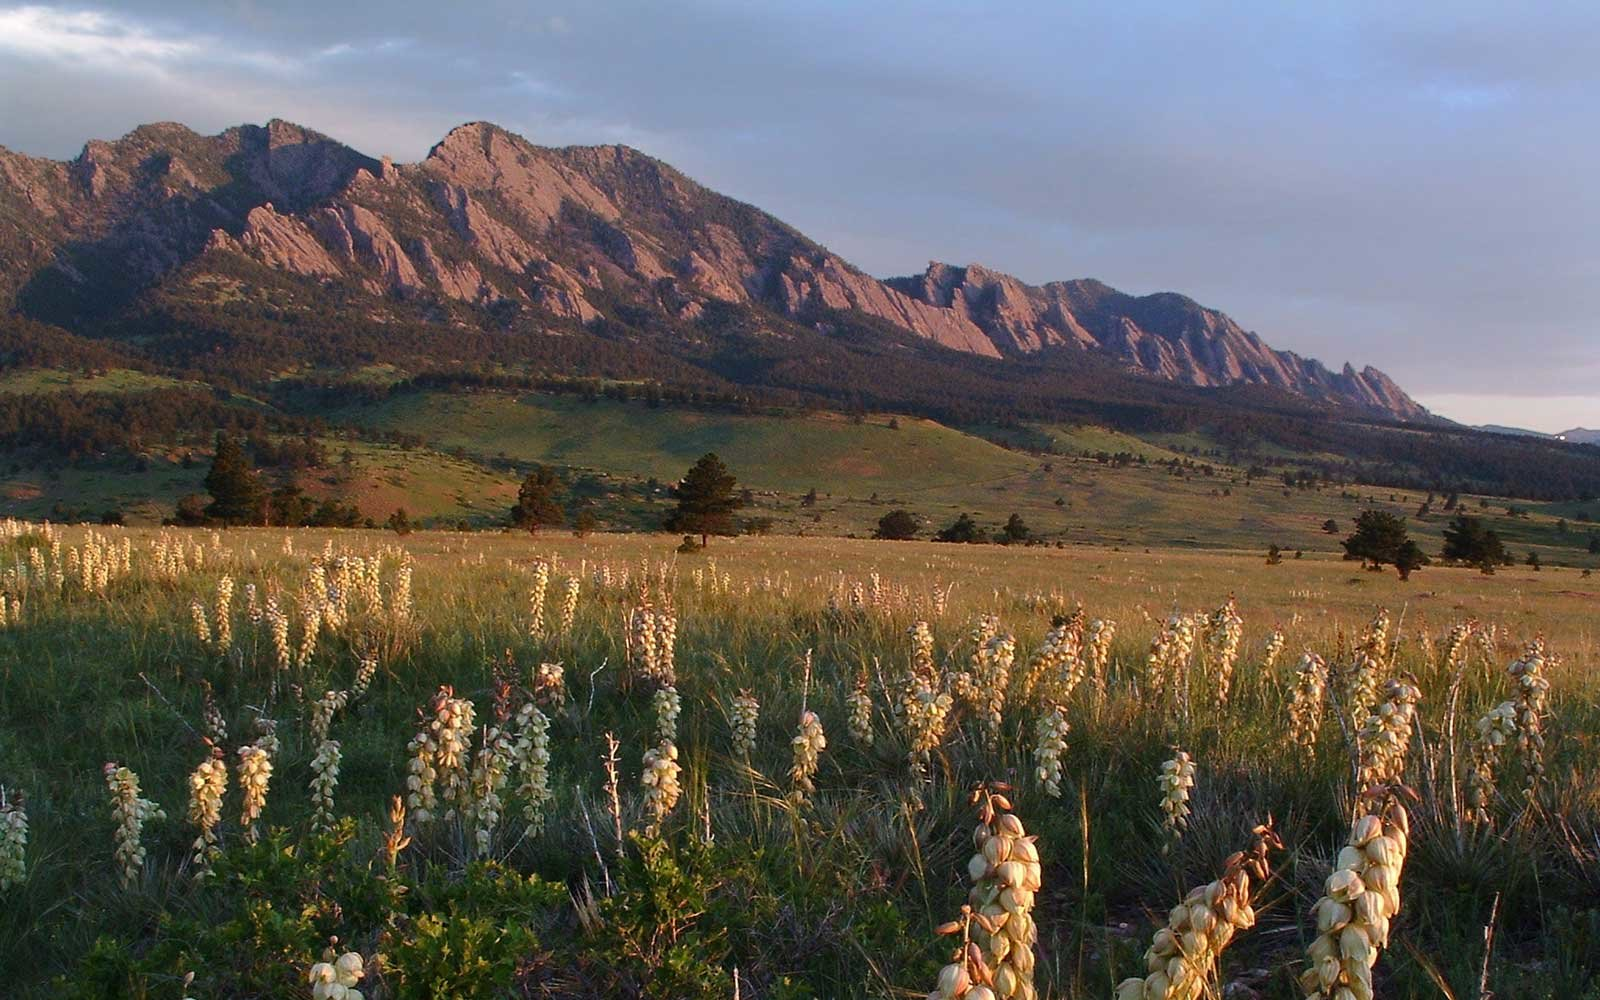 Wild yucca plants in bloom during a spring Boulder, Colorado sunrise